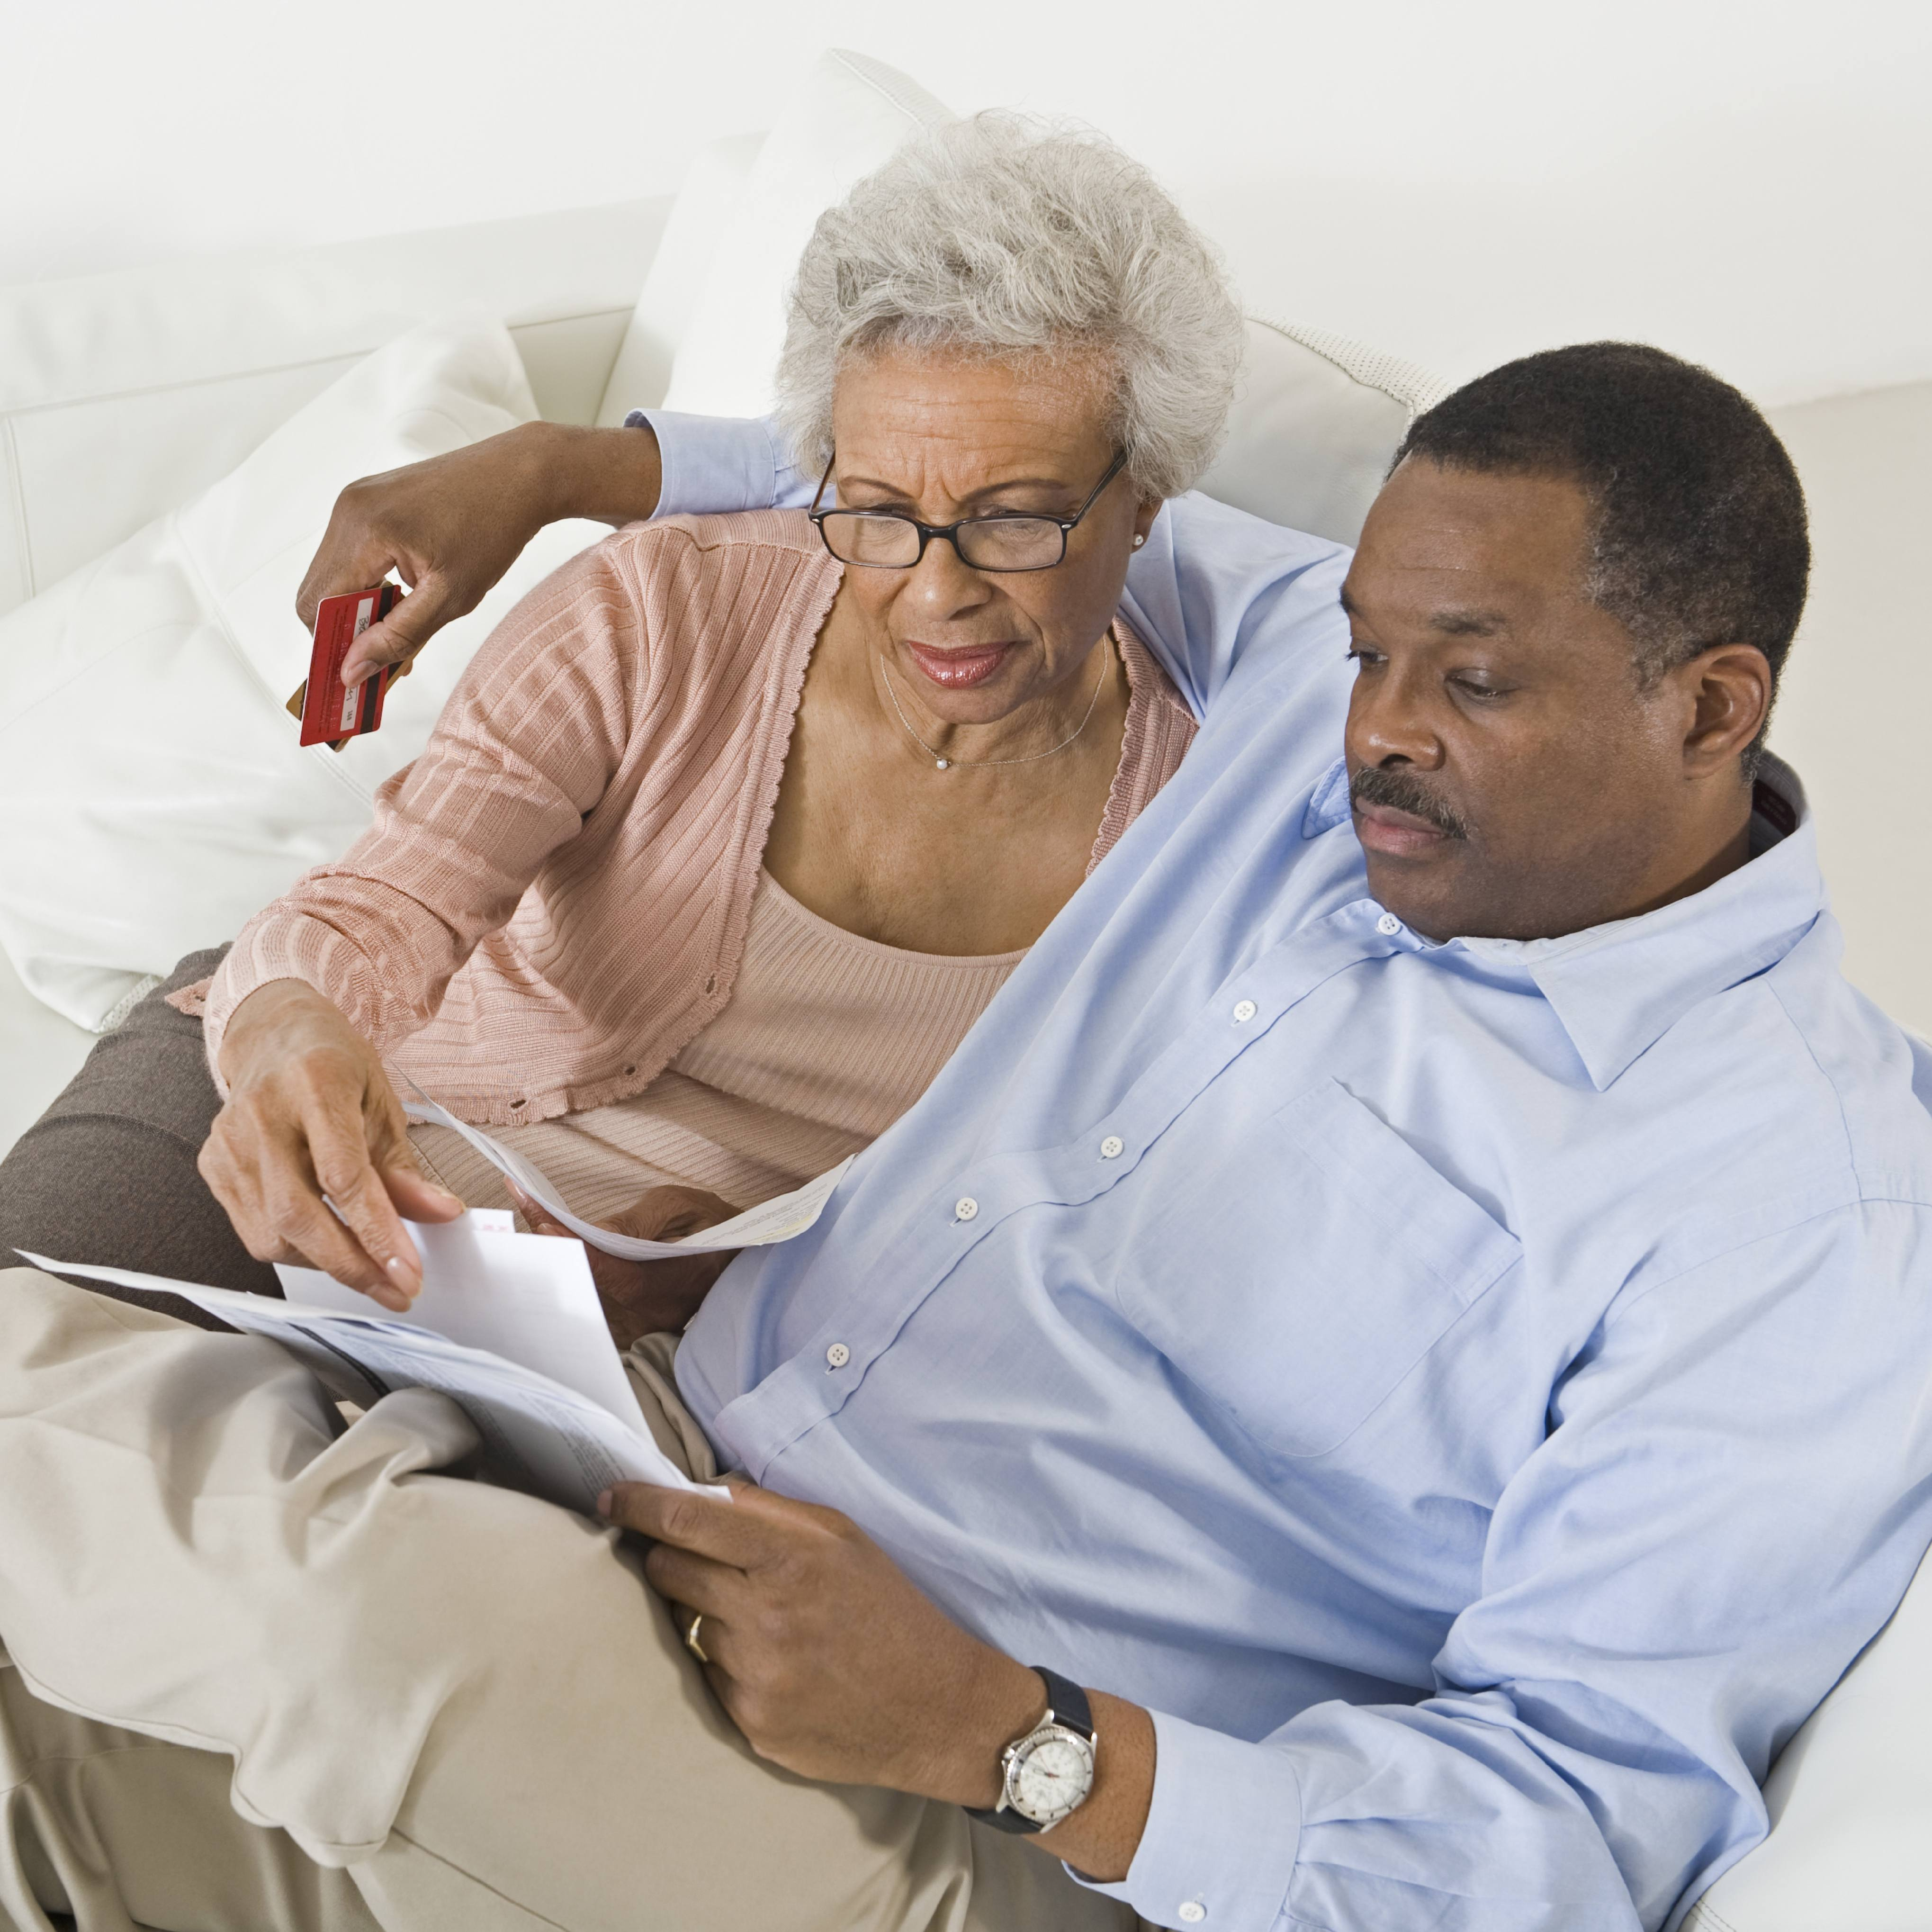 a Black woman and a Black, looking serious and thoughtful, sitting on a cream colored couch and reading paper documents together